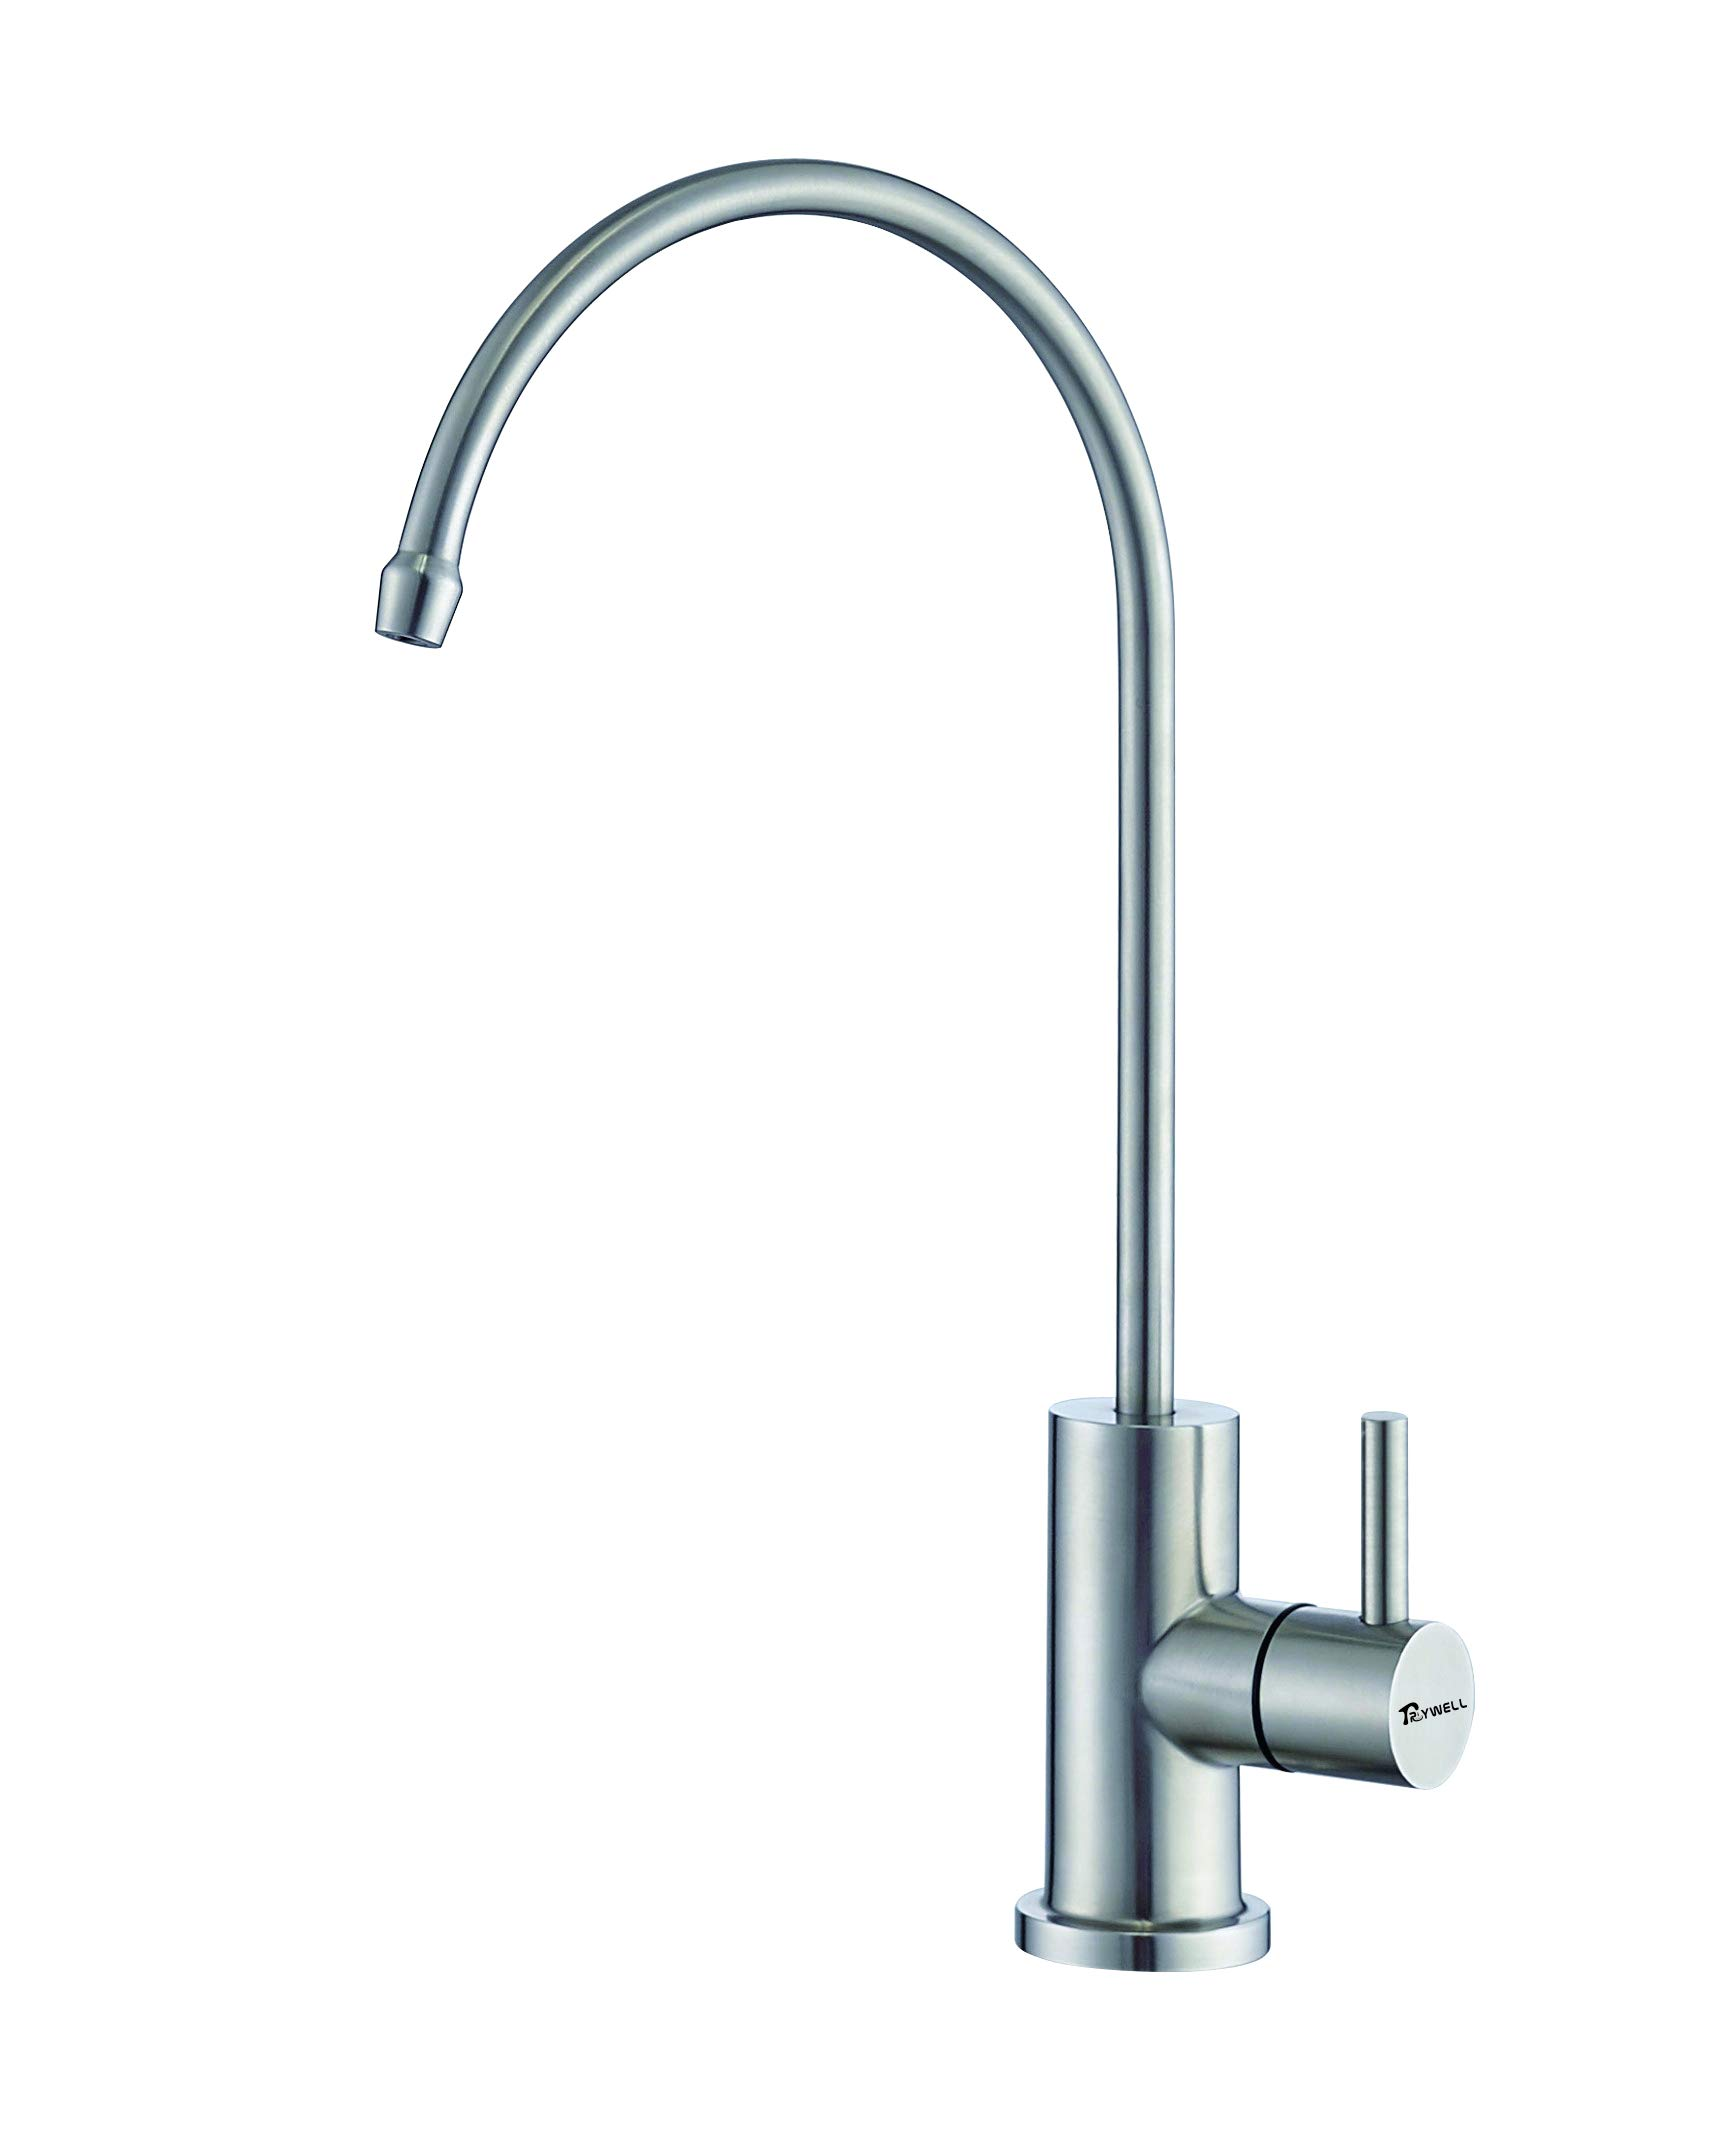 TRYWELL Lead-Free Stainless Steel Beverage Faucet Single Handle Drinking Water Kitchen Sink Faucet